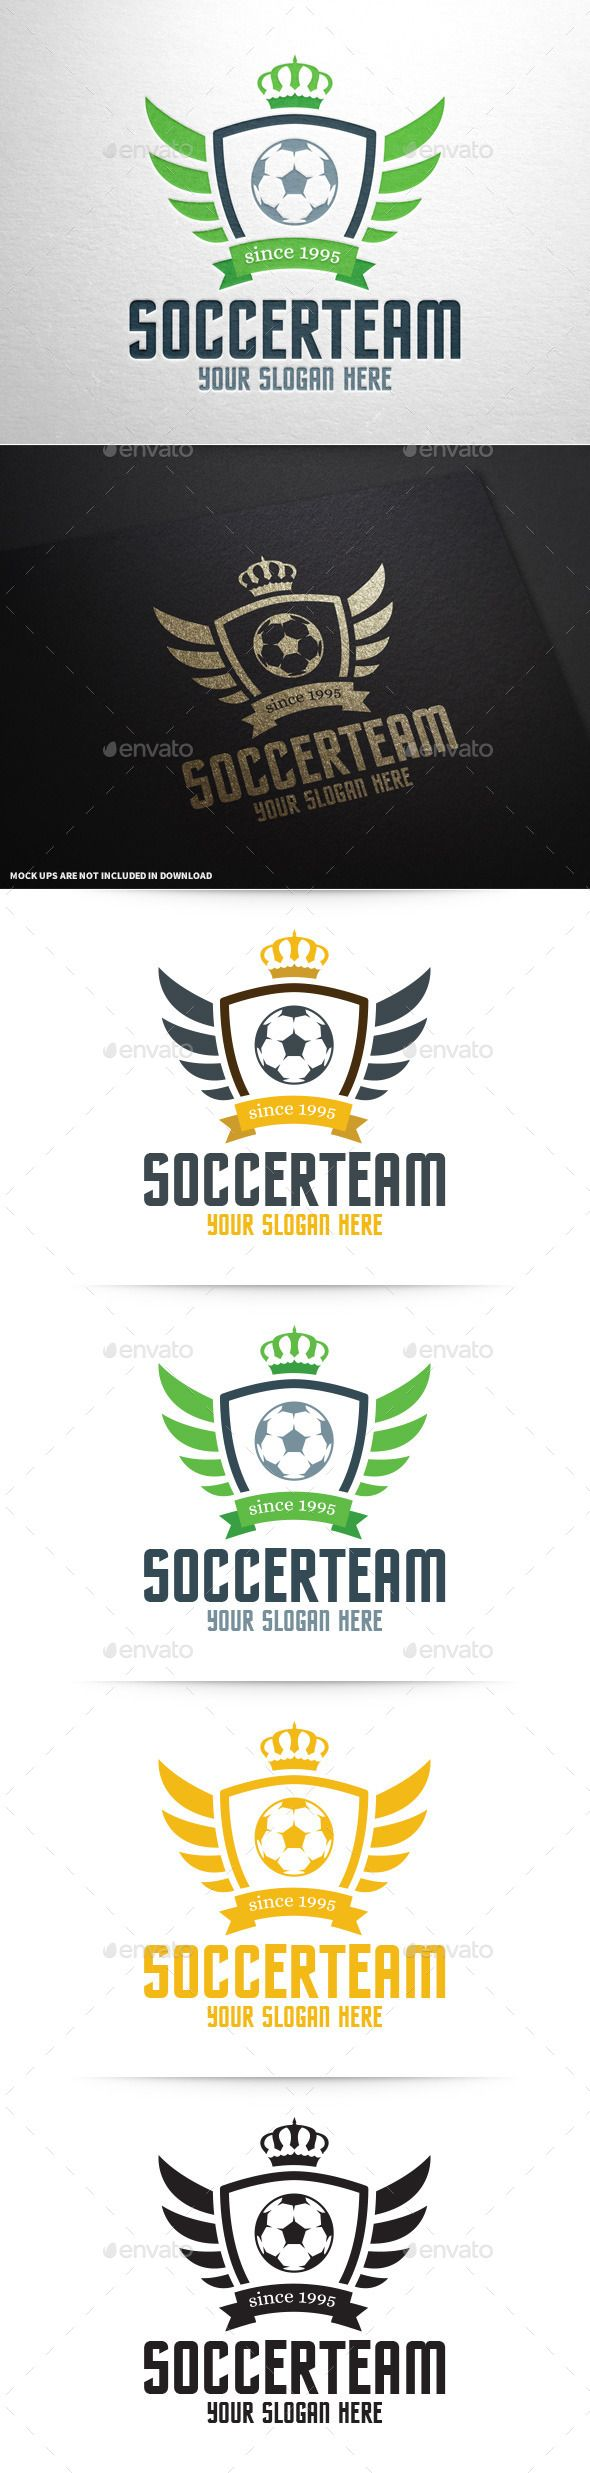 Soccer Team Logo Template — Vector EPS #club #sport • Available here → https://graphicriver.net/item/soccer-team-logo-template/9998123?ref=pxcr